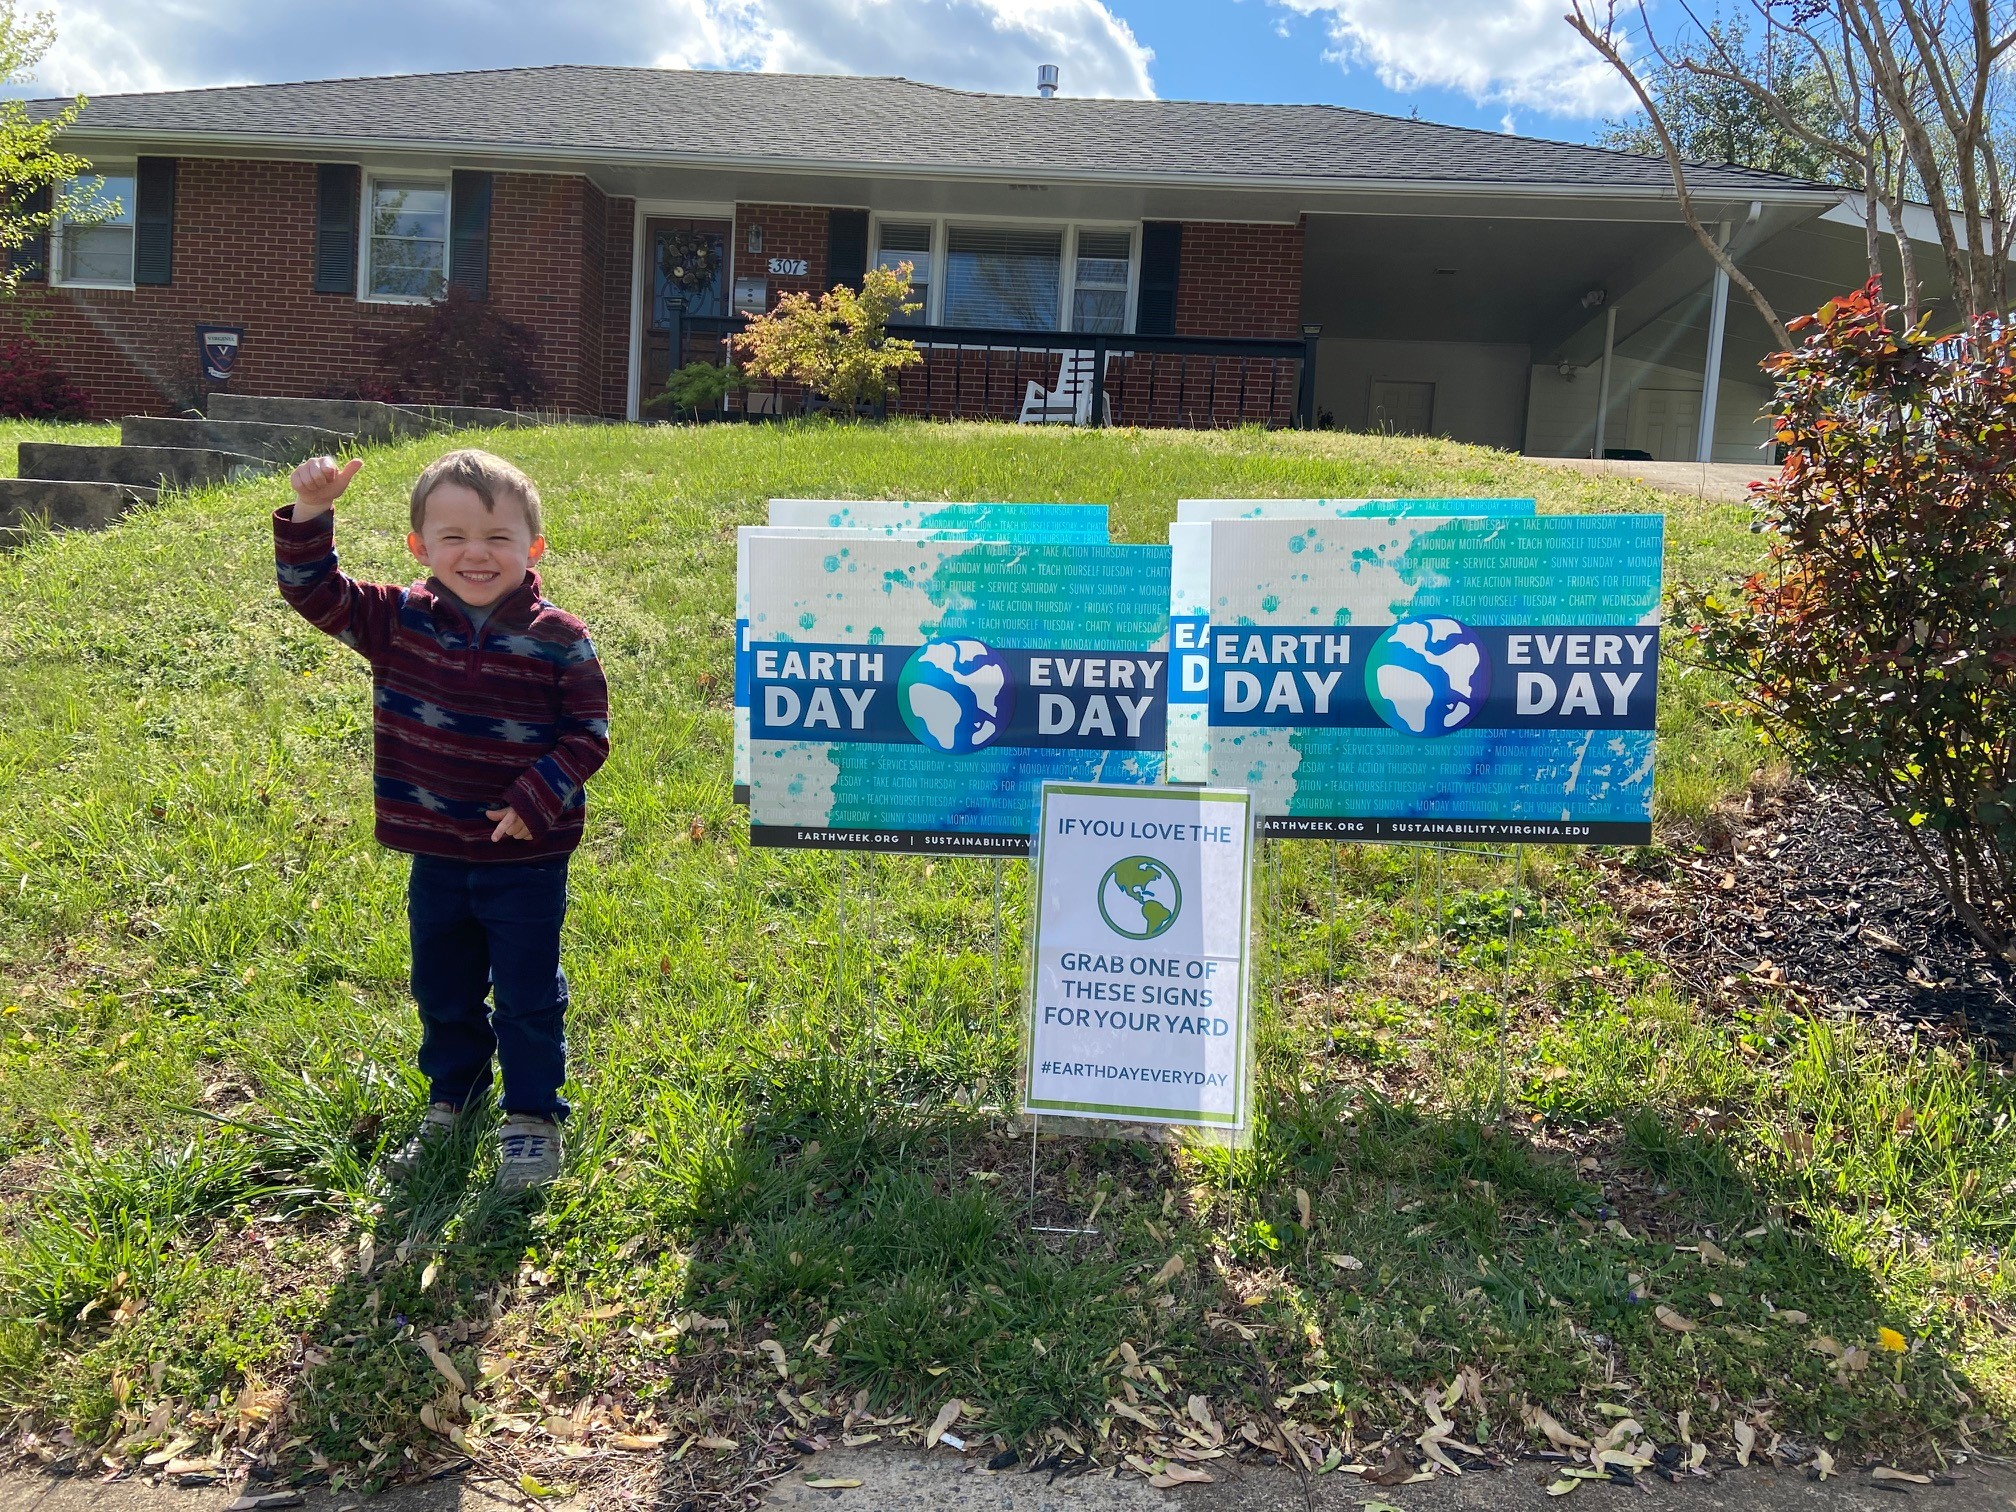 Small child standing next to EDED lawn signs in his front yard